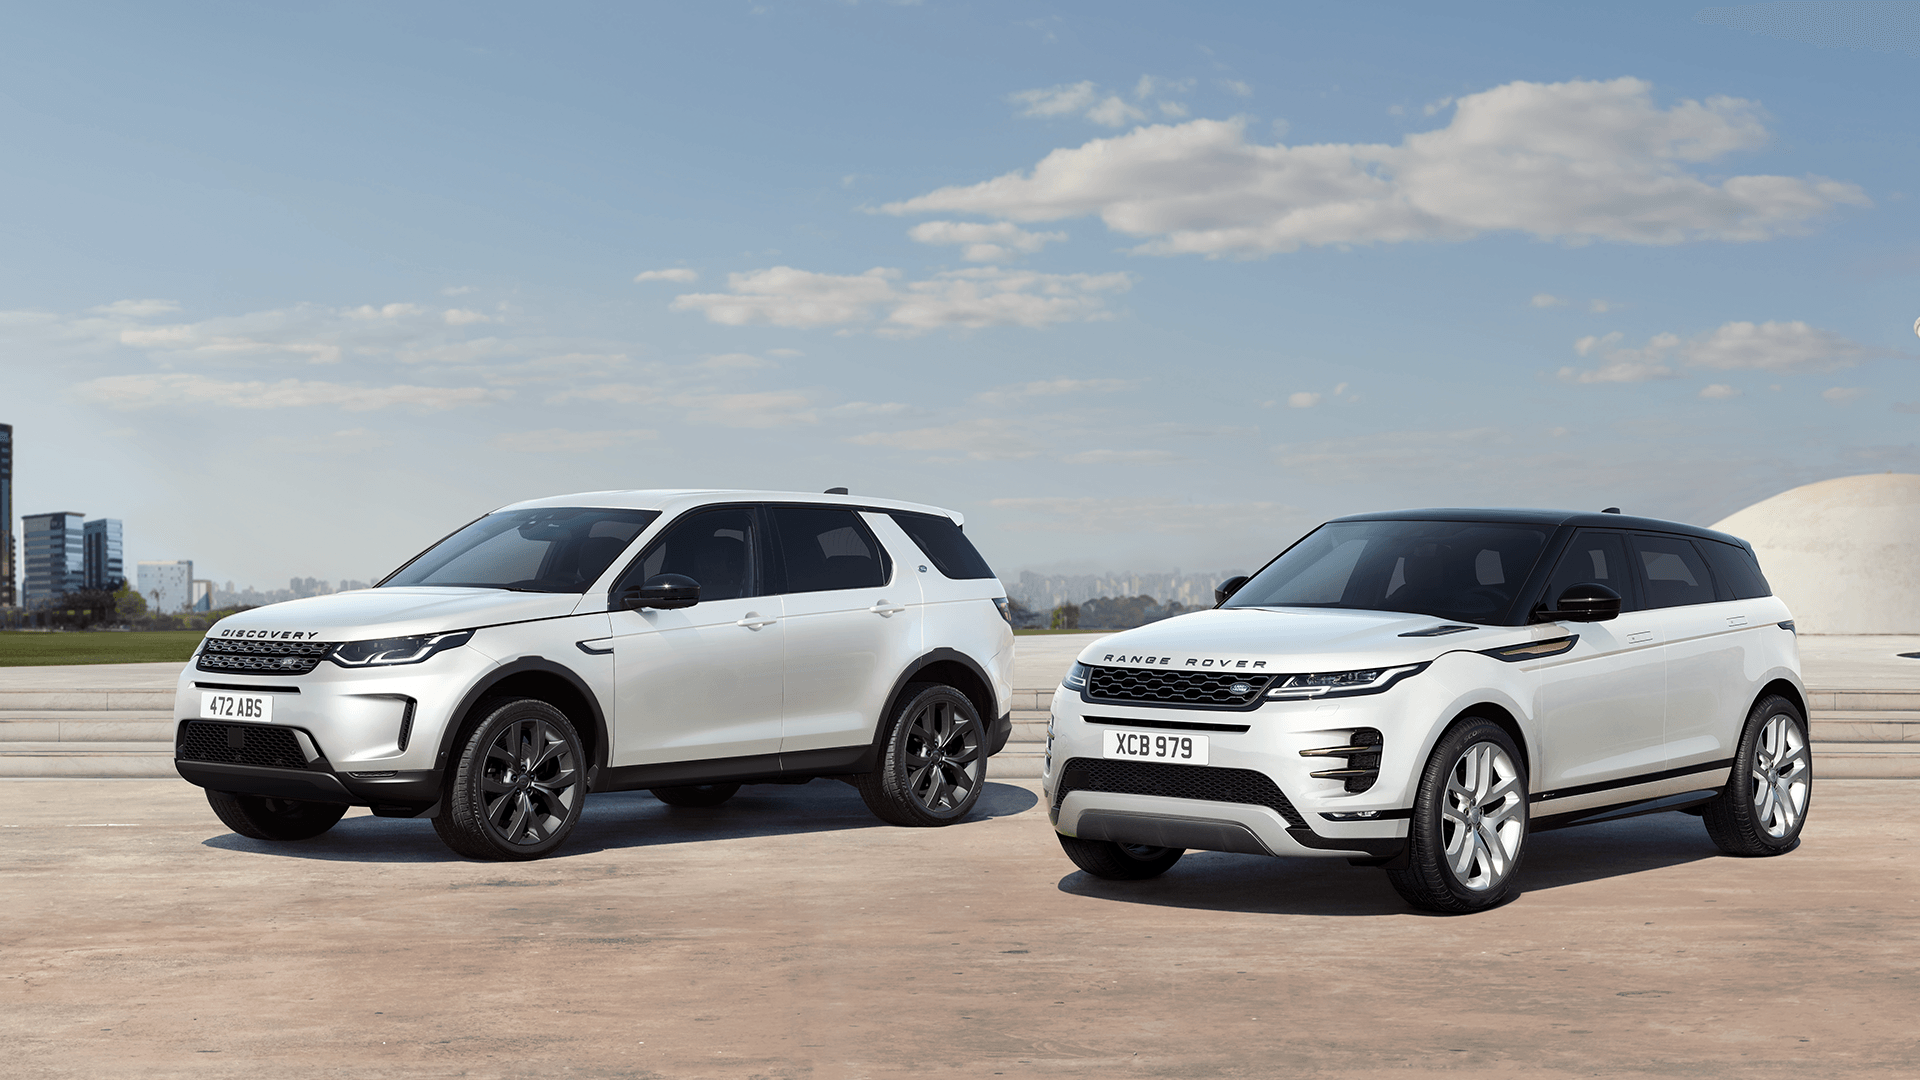 Range Rover Evoque BS6 and Discovery Sport BS6 Deliveries Begin